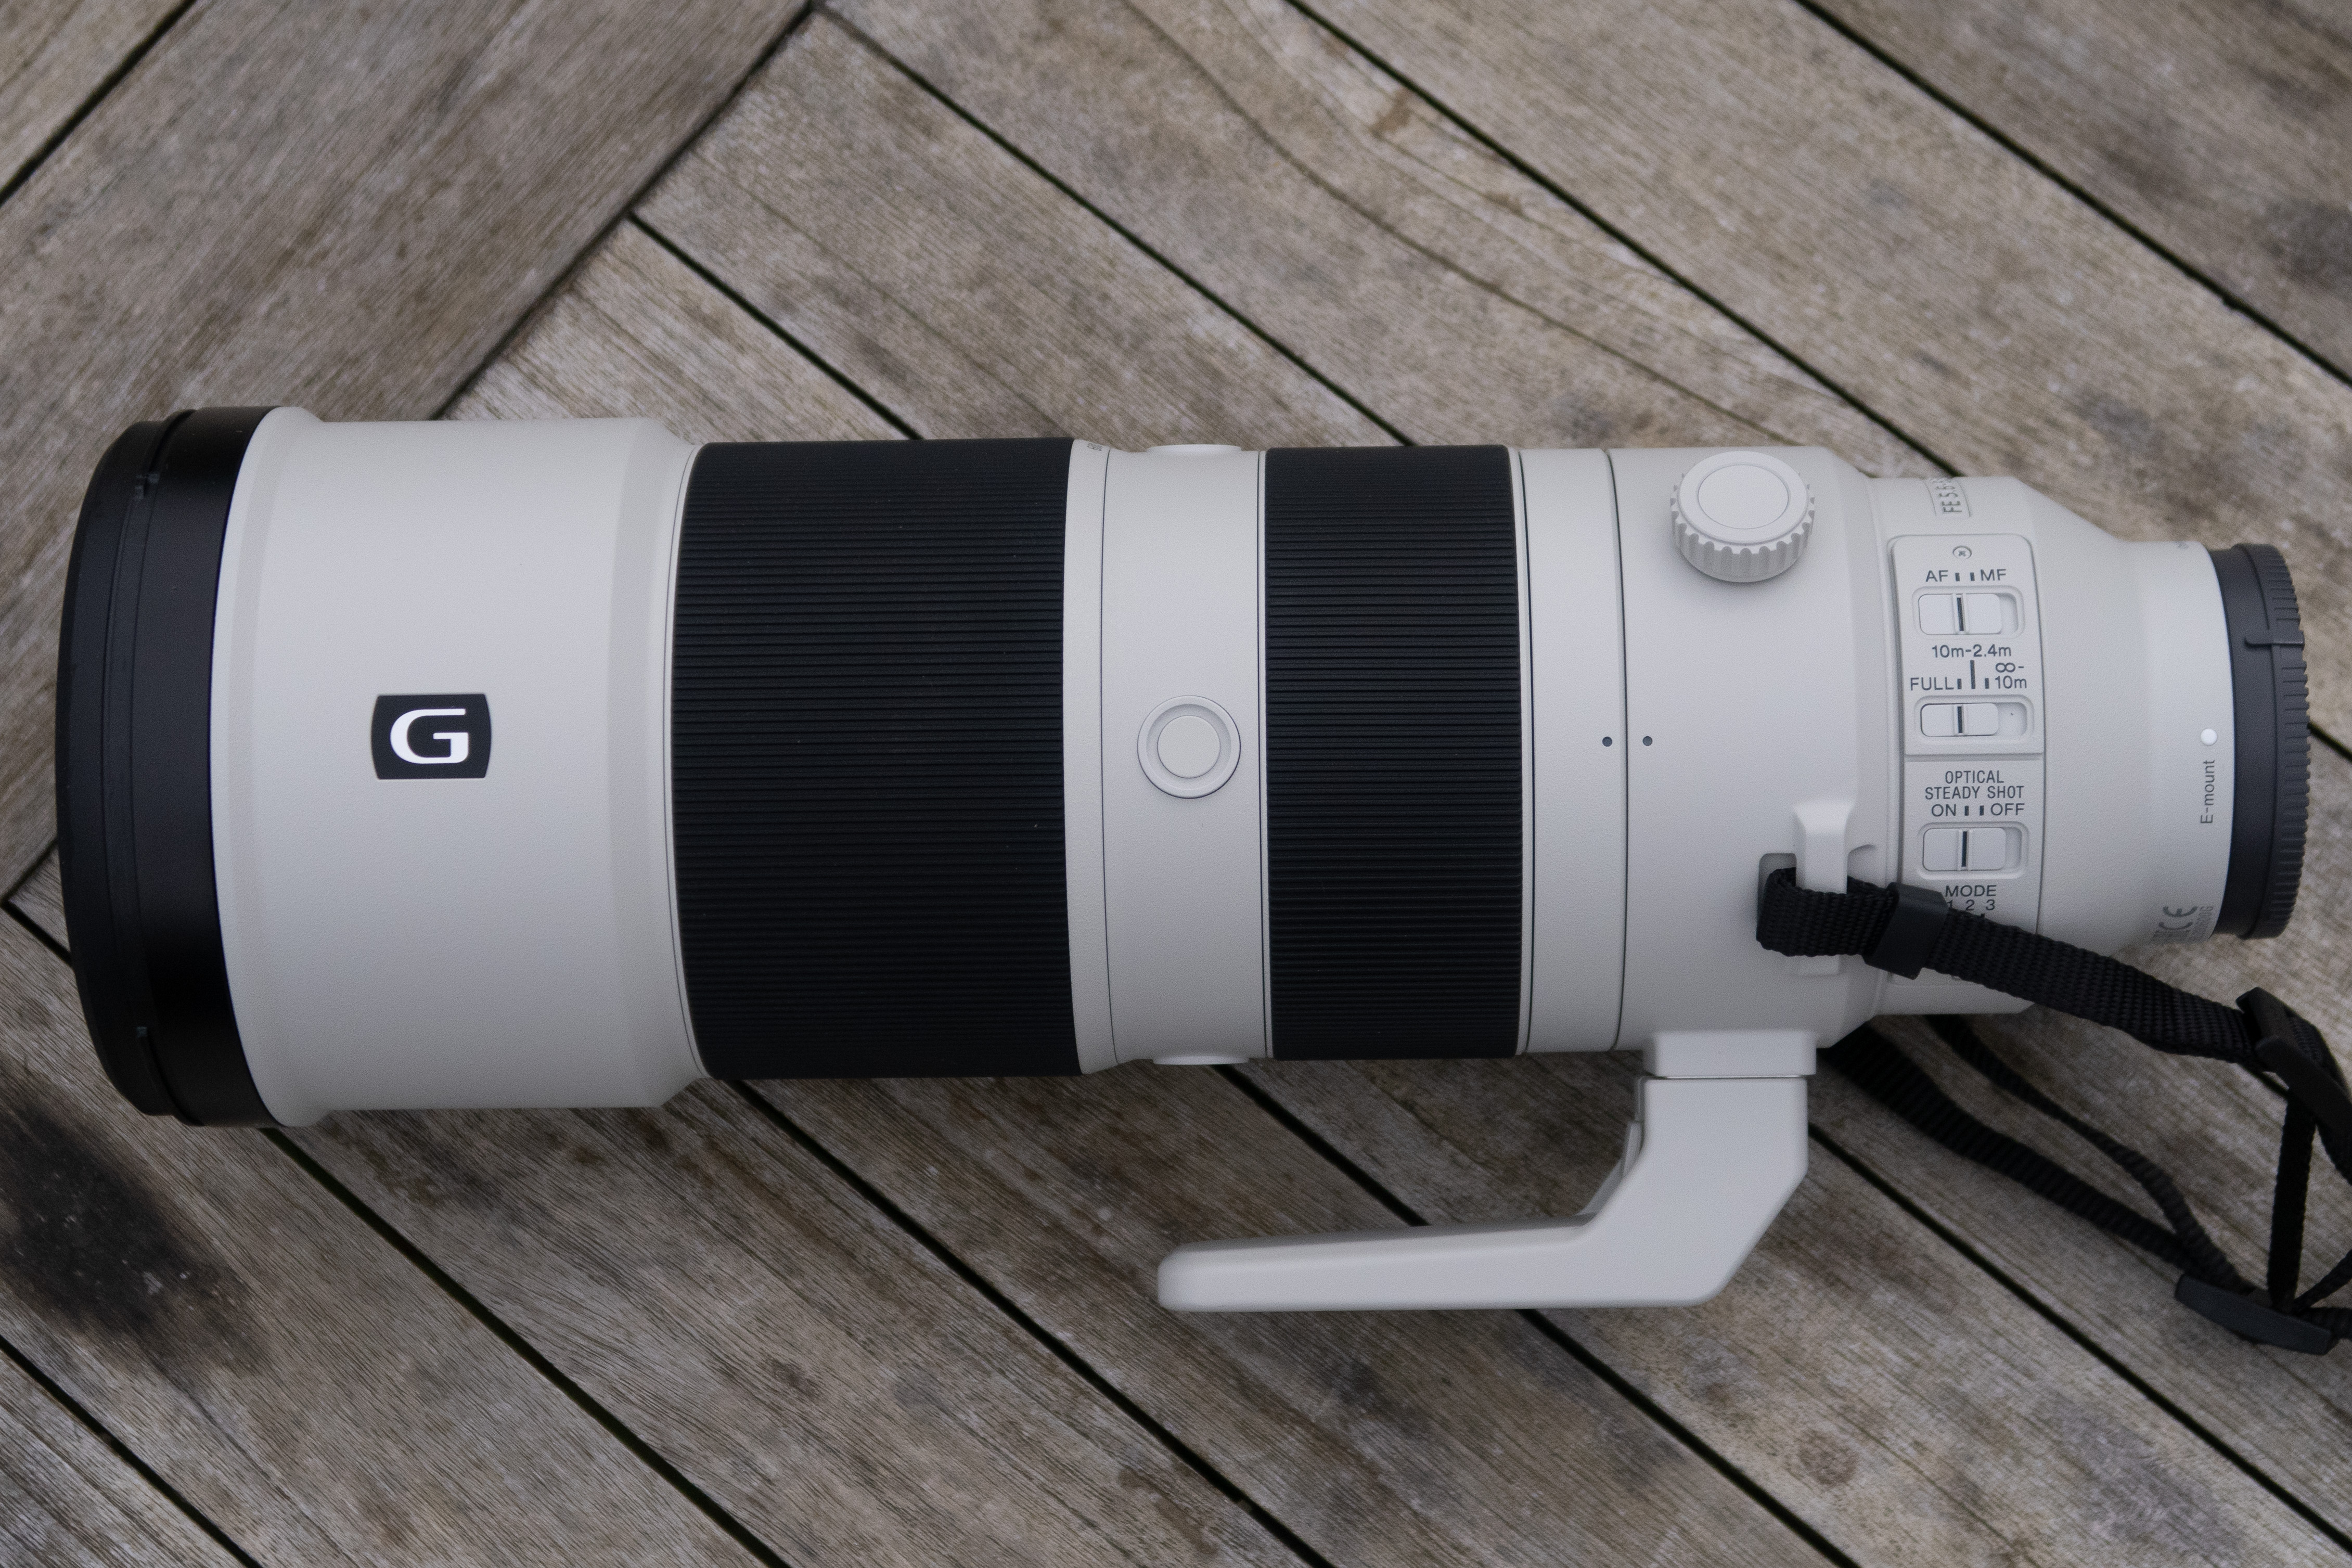 Sony FE 200-600mm F5.6-6.3 G OSS review – hands-on first look